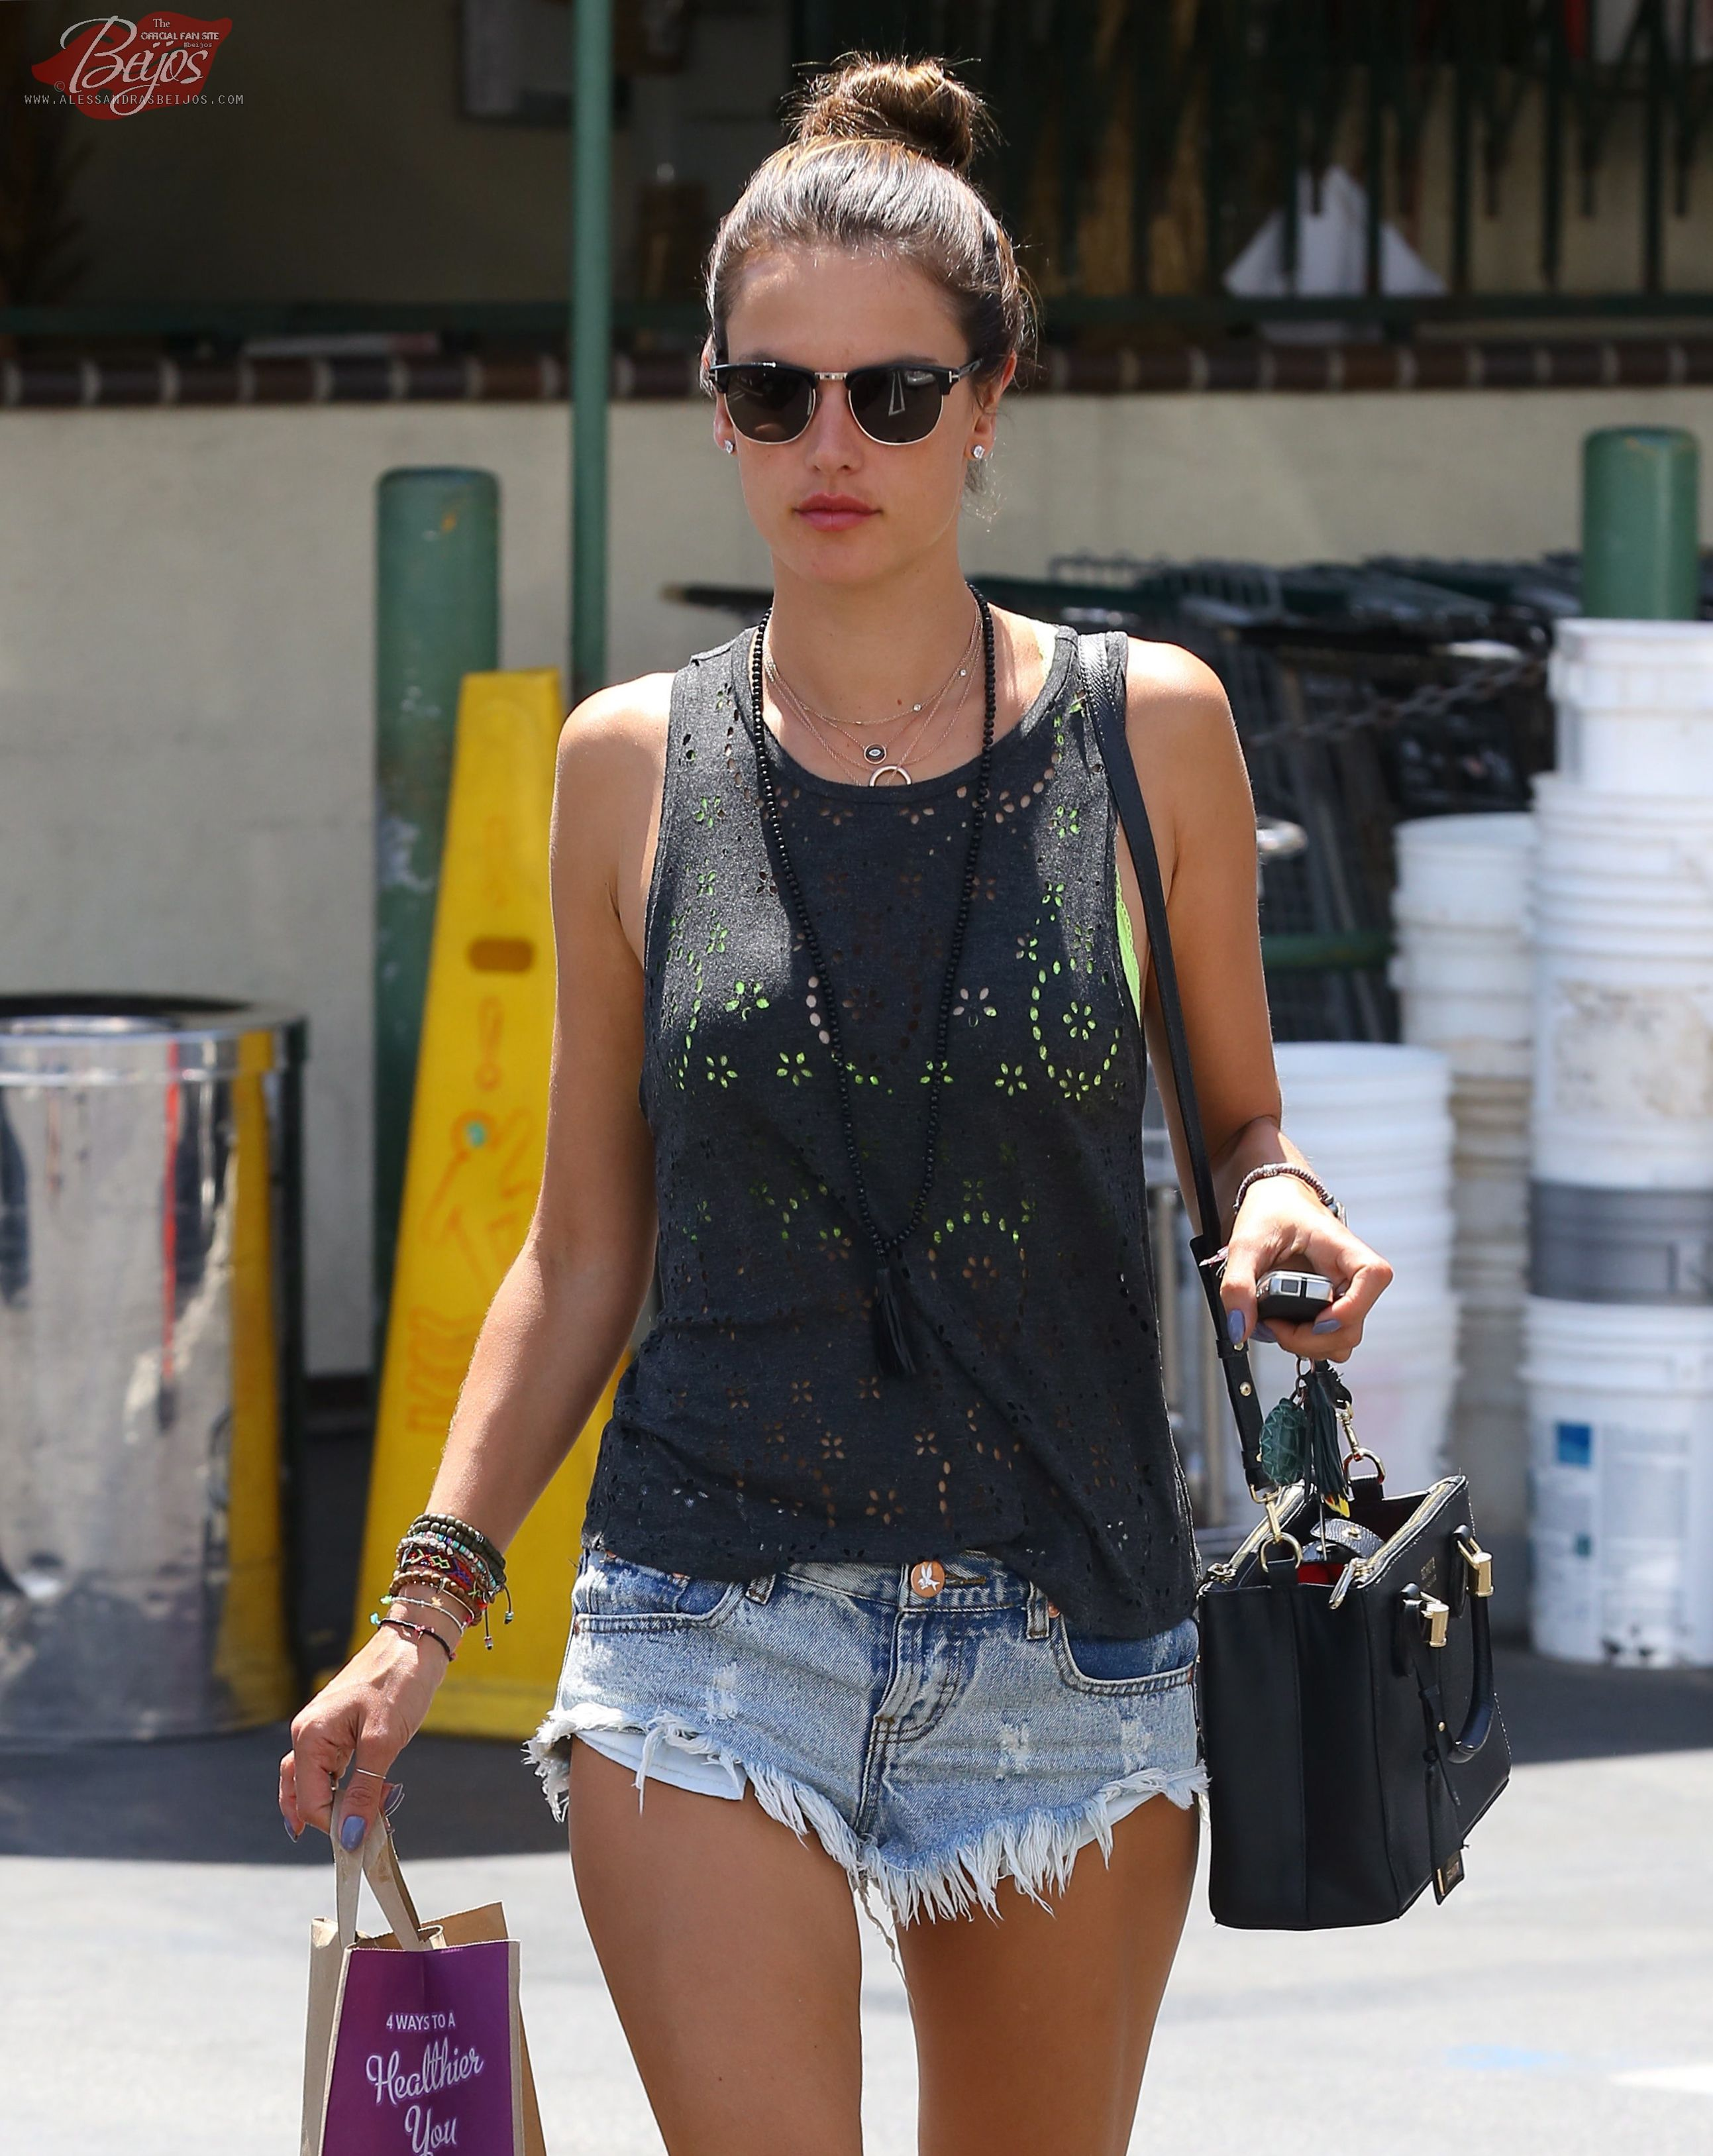 Alessandra Ambrosio stops to check her phone while out shopping along  Montana Ave in Santa Monica, California on May 1, 2014 8cf0b2497c92